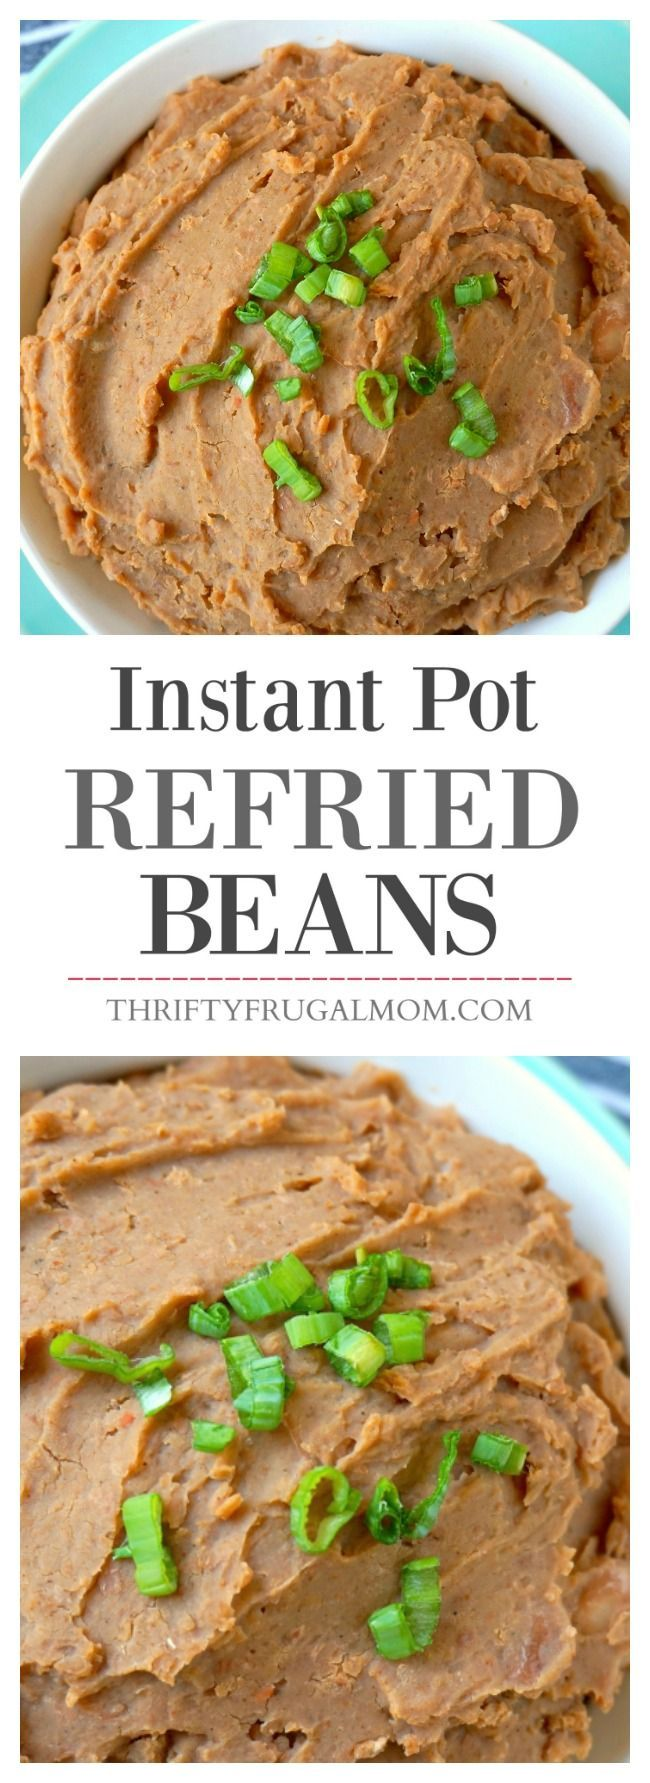 Homemade Refried Beans are SO good and they're such a cheap protein!  And with the Instant Pot, they take just 30 minutes of cooking time to make.  Includes instructions for making refried beans in your Crockpot as well.